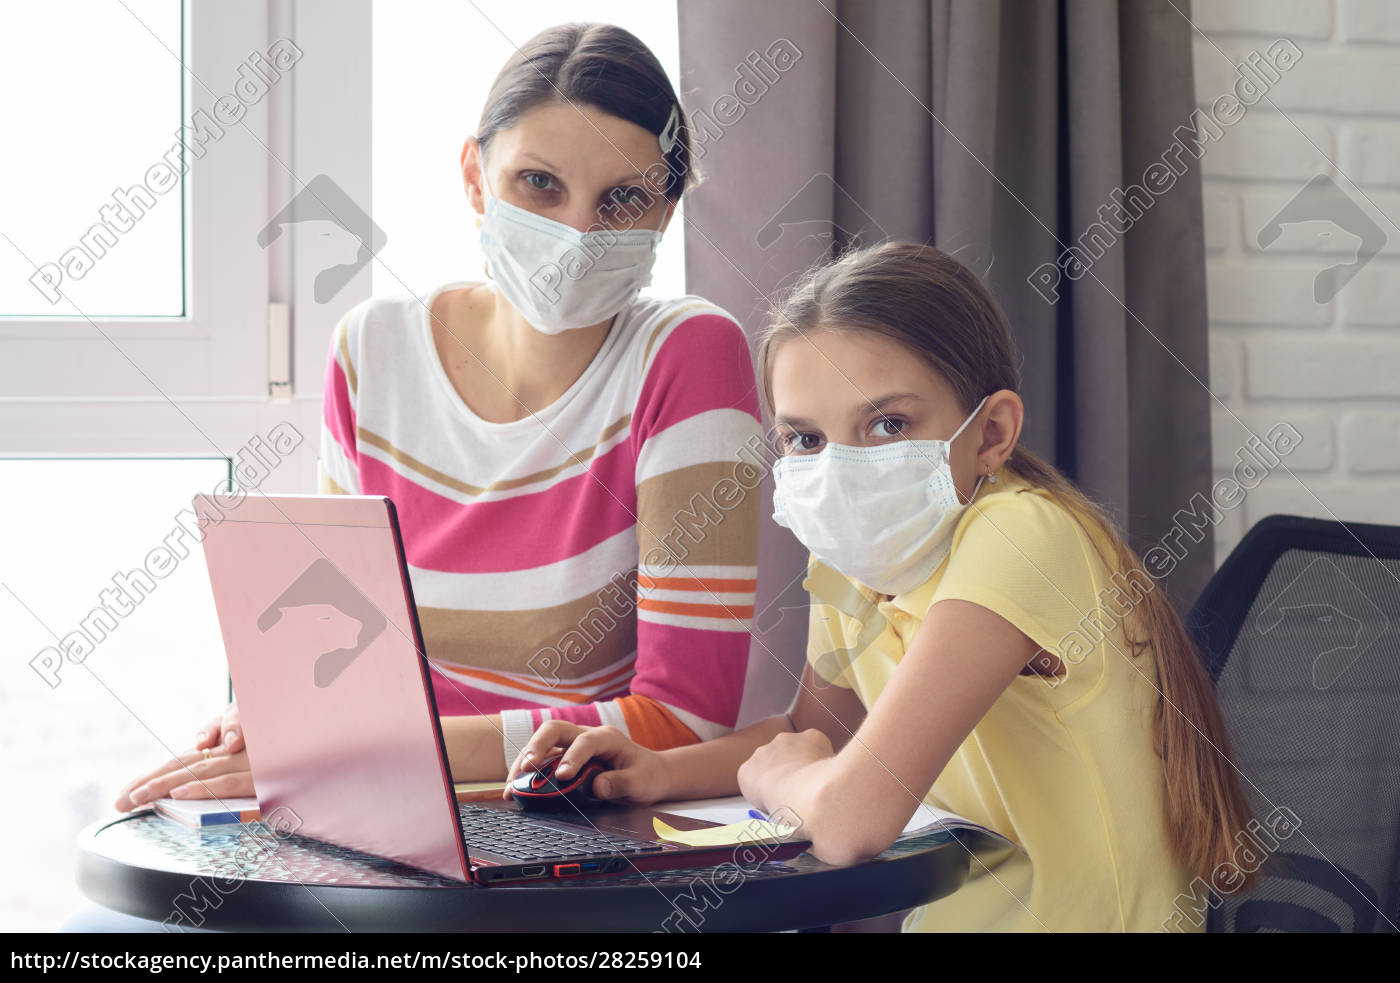 the, quarantined, family, in, the, isolation - 28259104